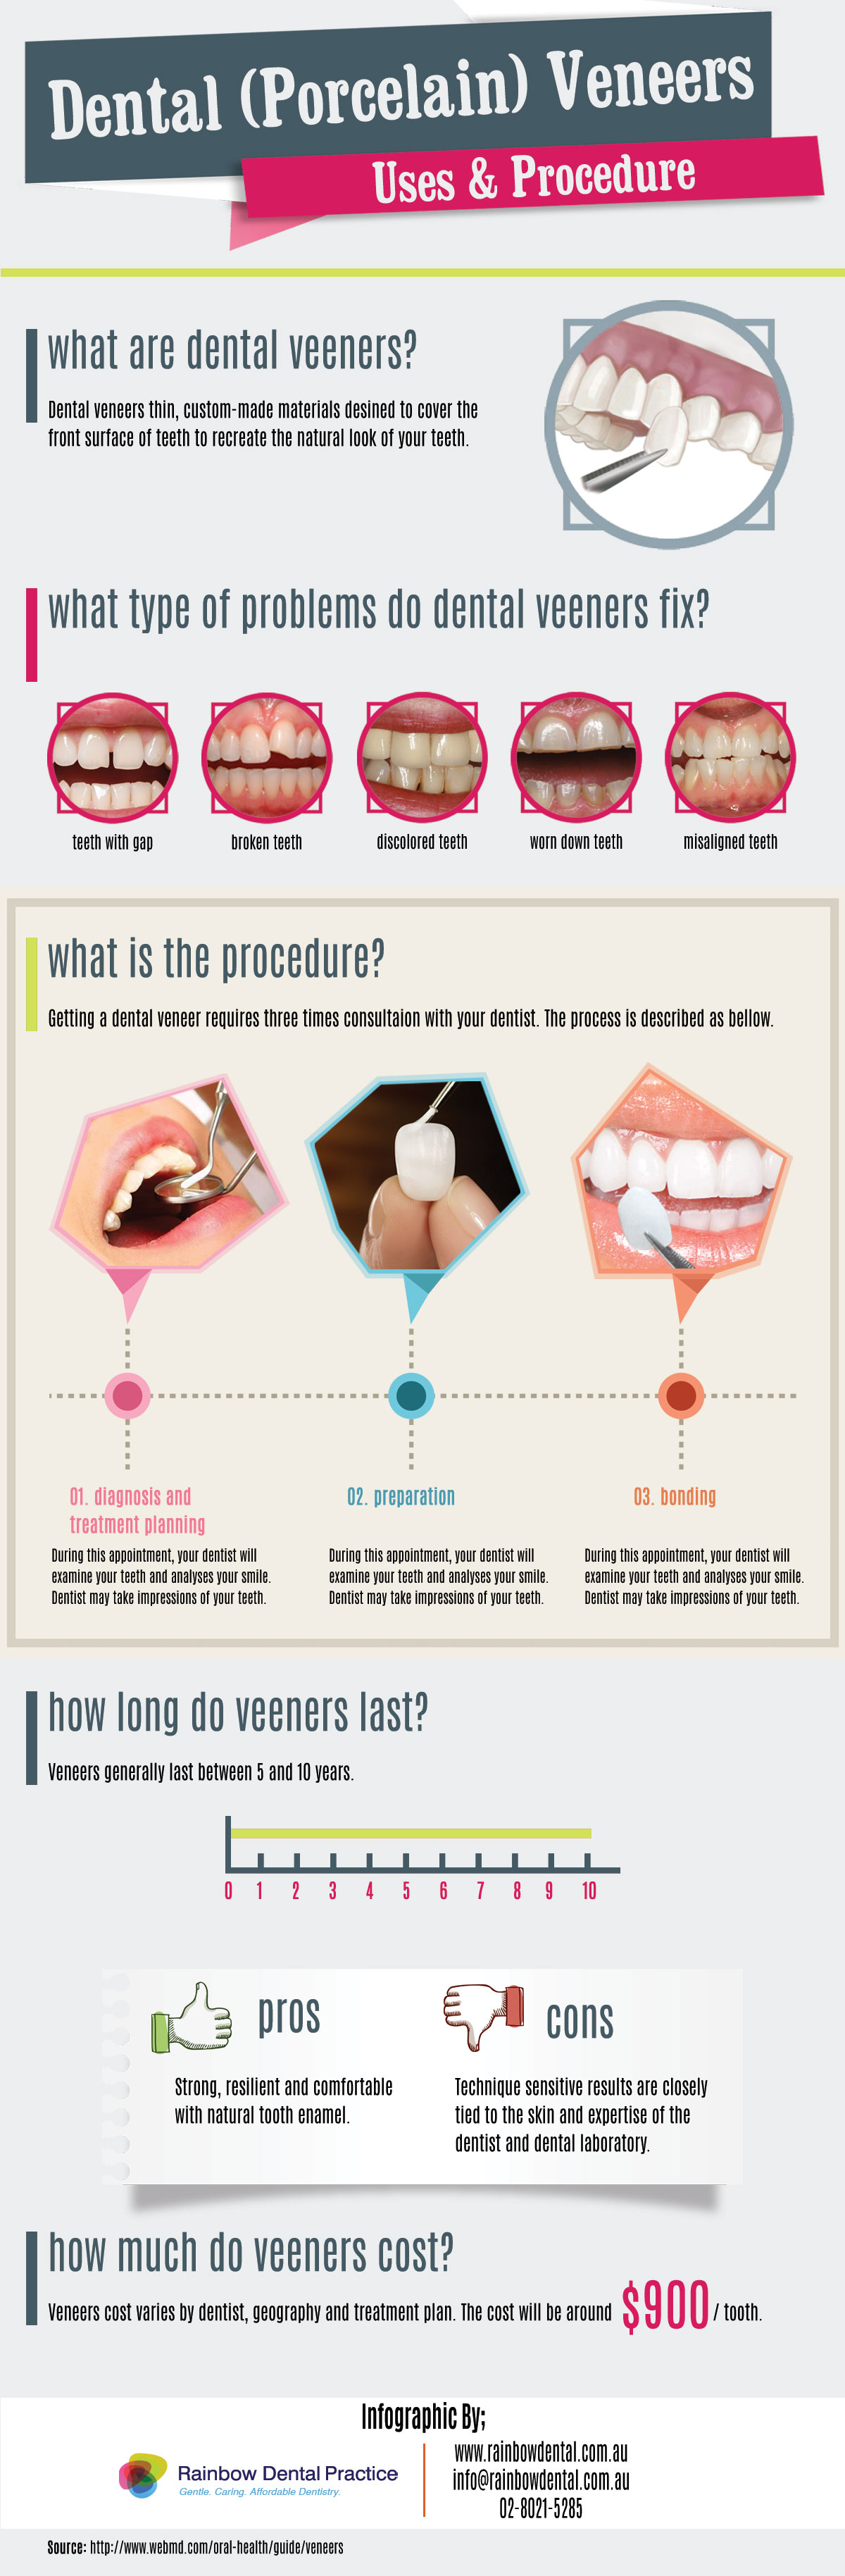 Dental-Veneers-Uses-Procedure-Infographic